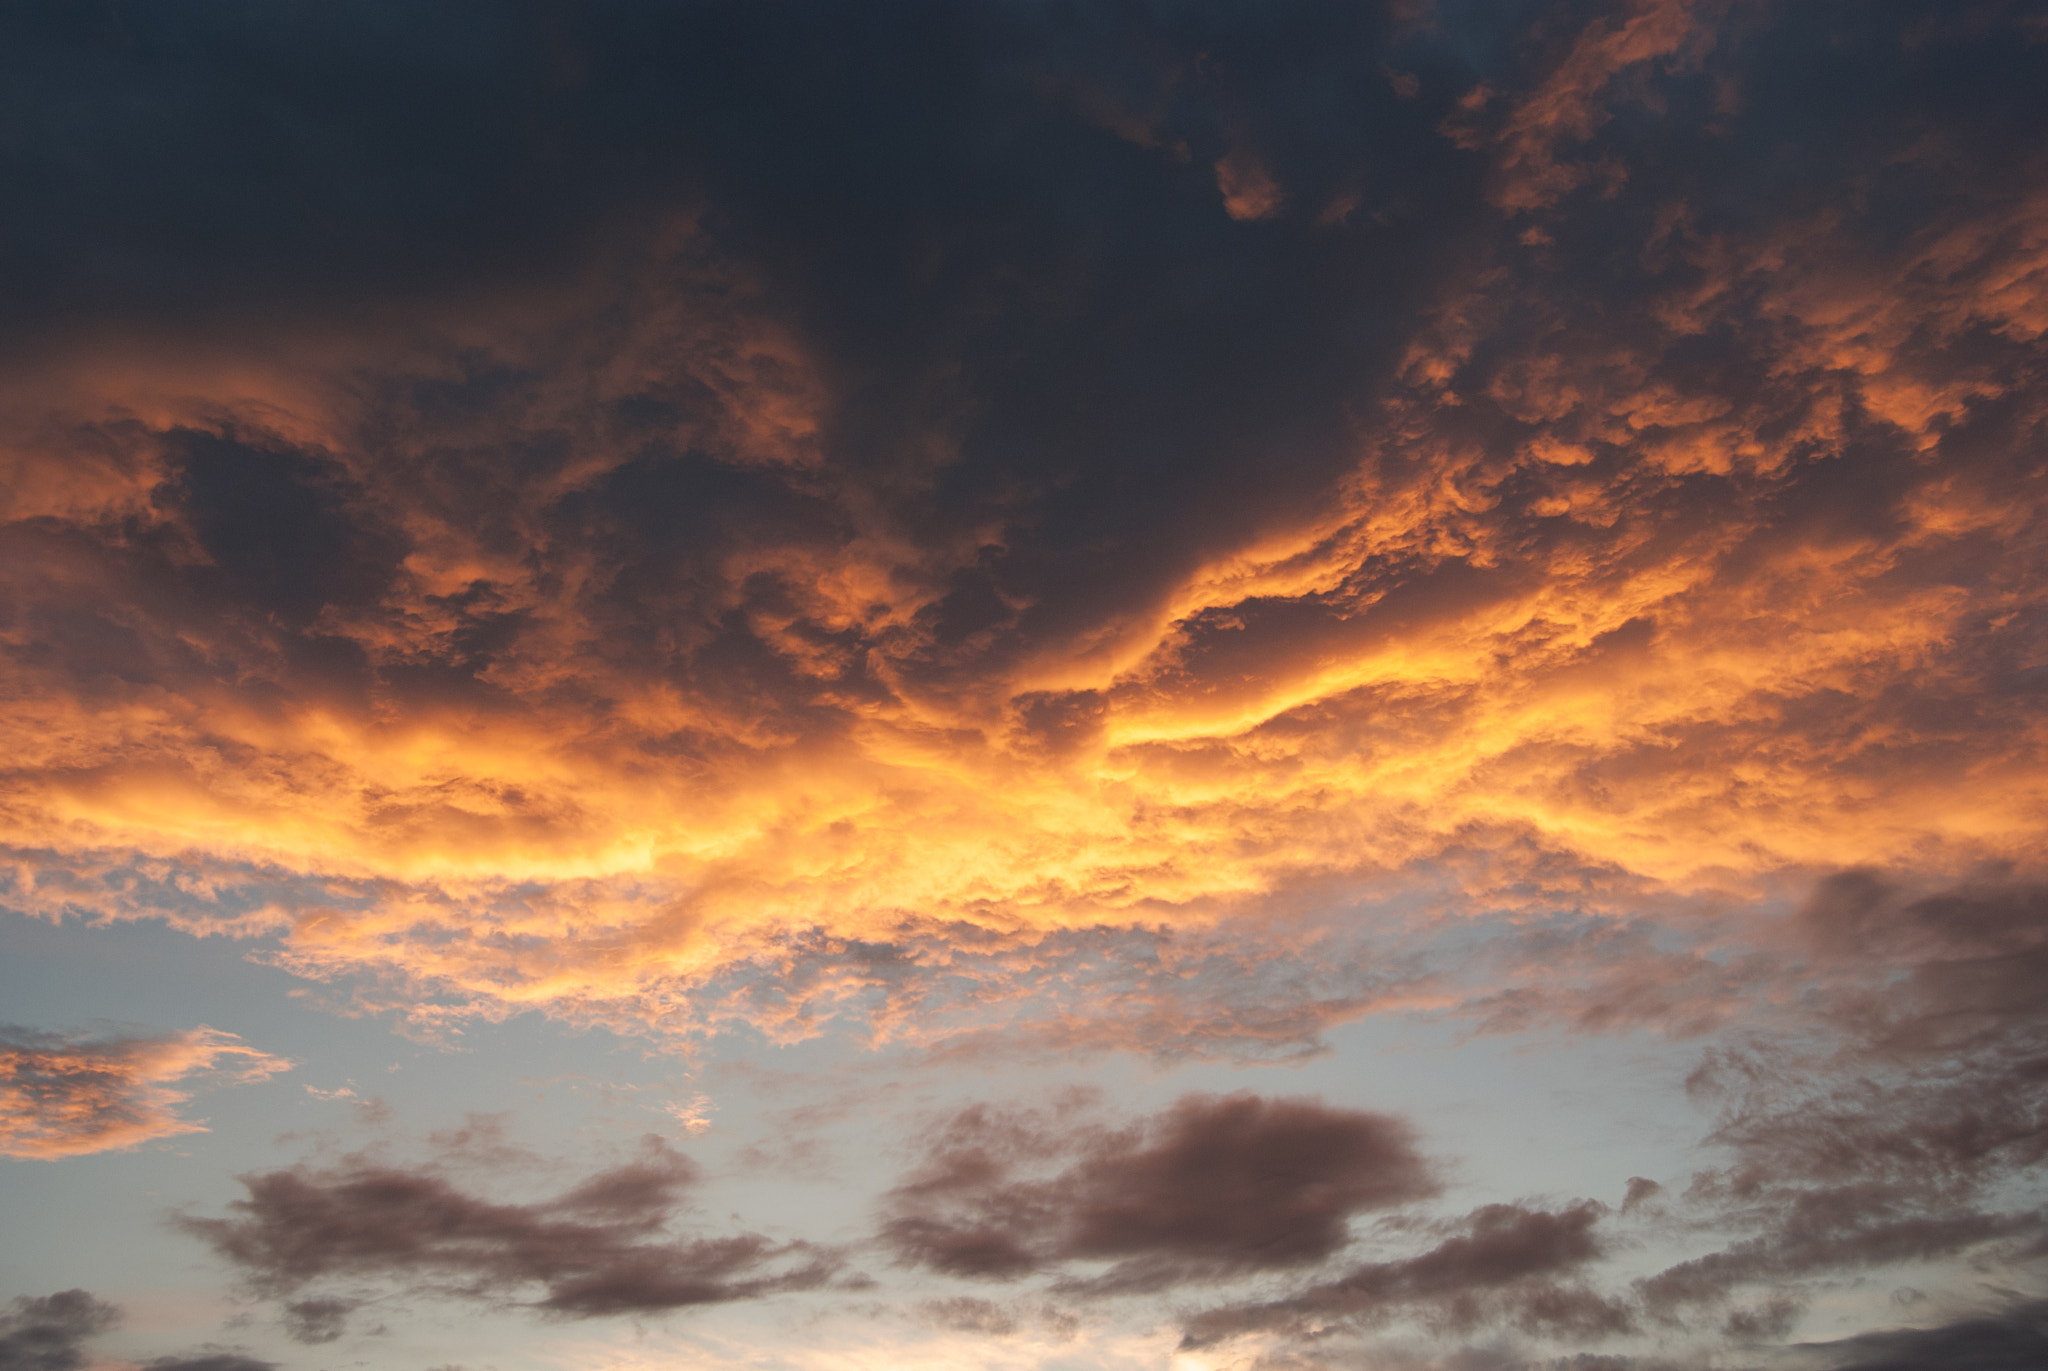 Photograph Sunset Clouds by Mark Jones on 500px